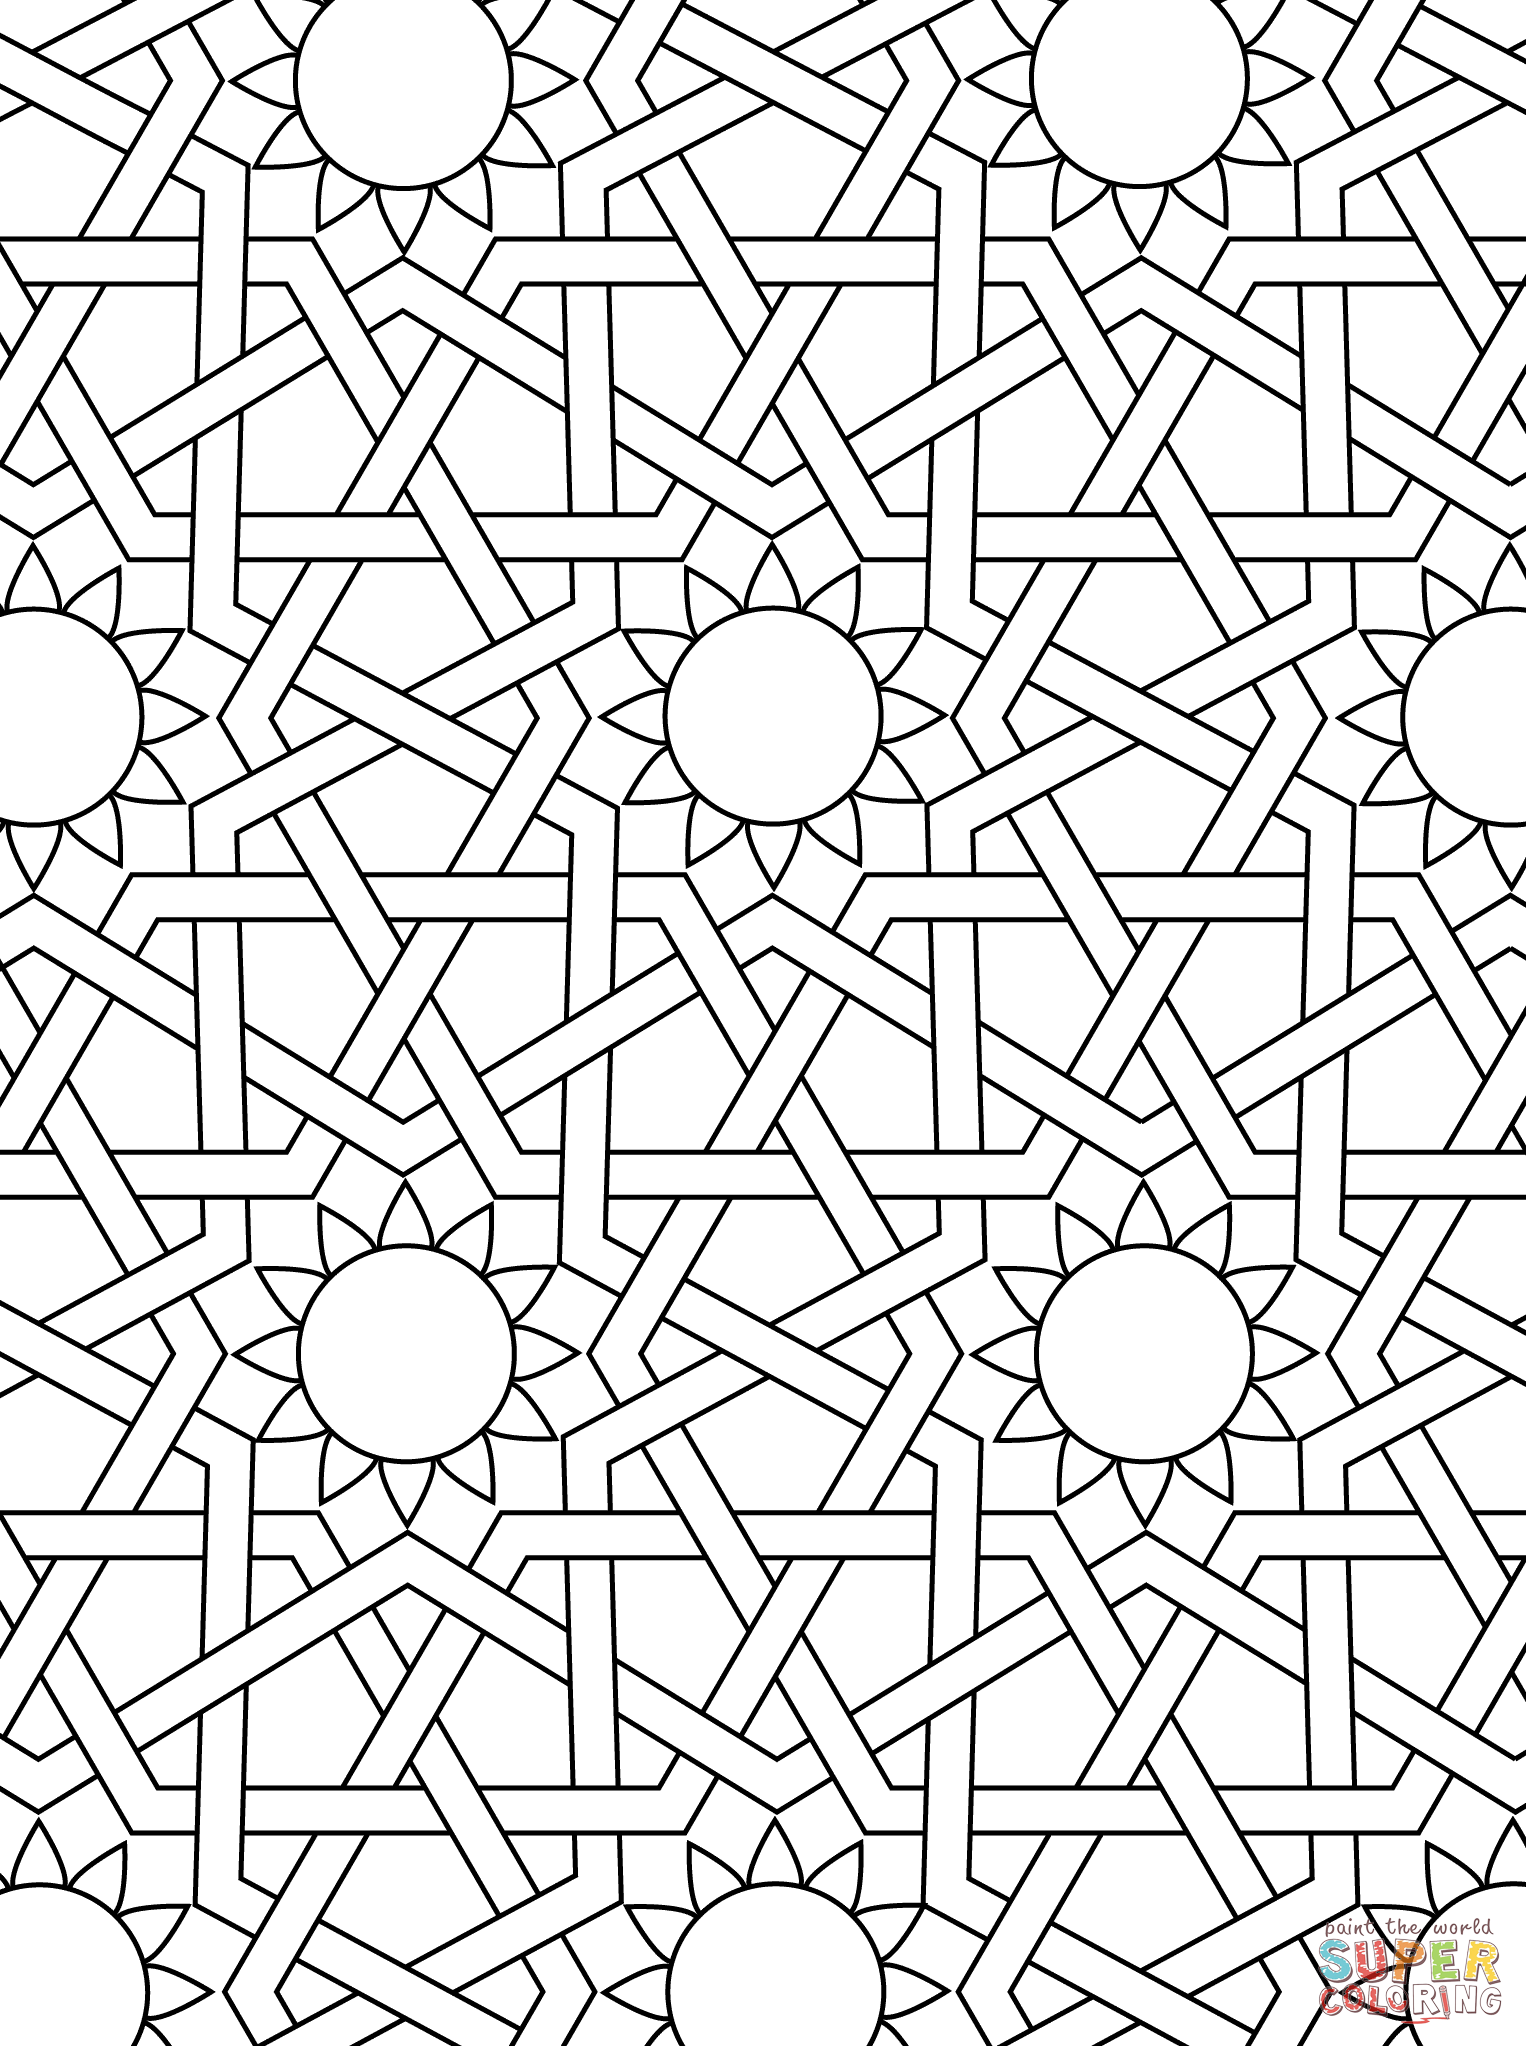 Coloring Pages Mosaic Color Pages mosaic patterns coloring pages az related post from printable for free all